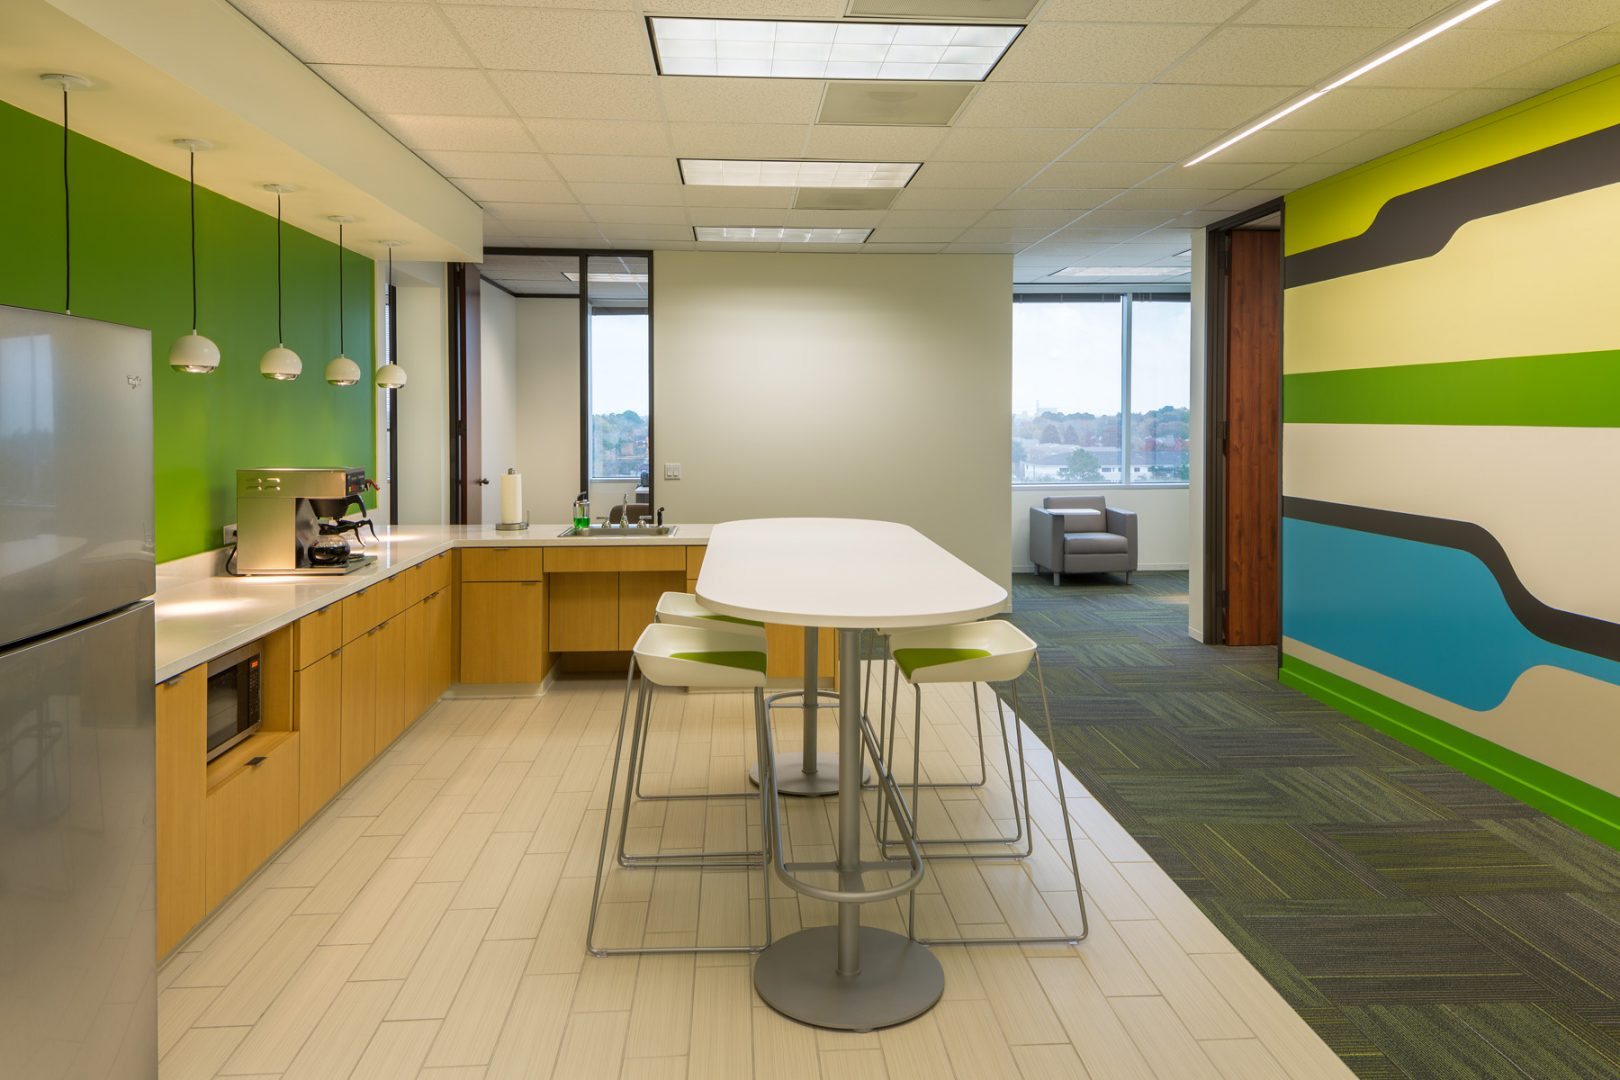 Workplace Interior Design Flow-Cal Houston Coffee Bar Island Colorful Wall Graphics